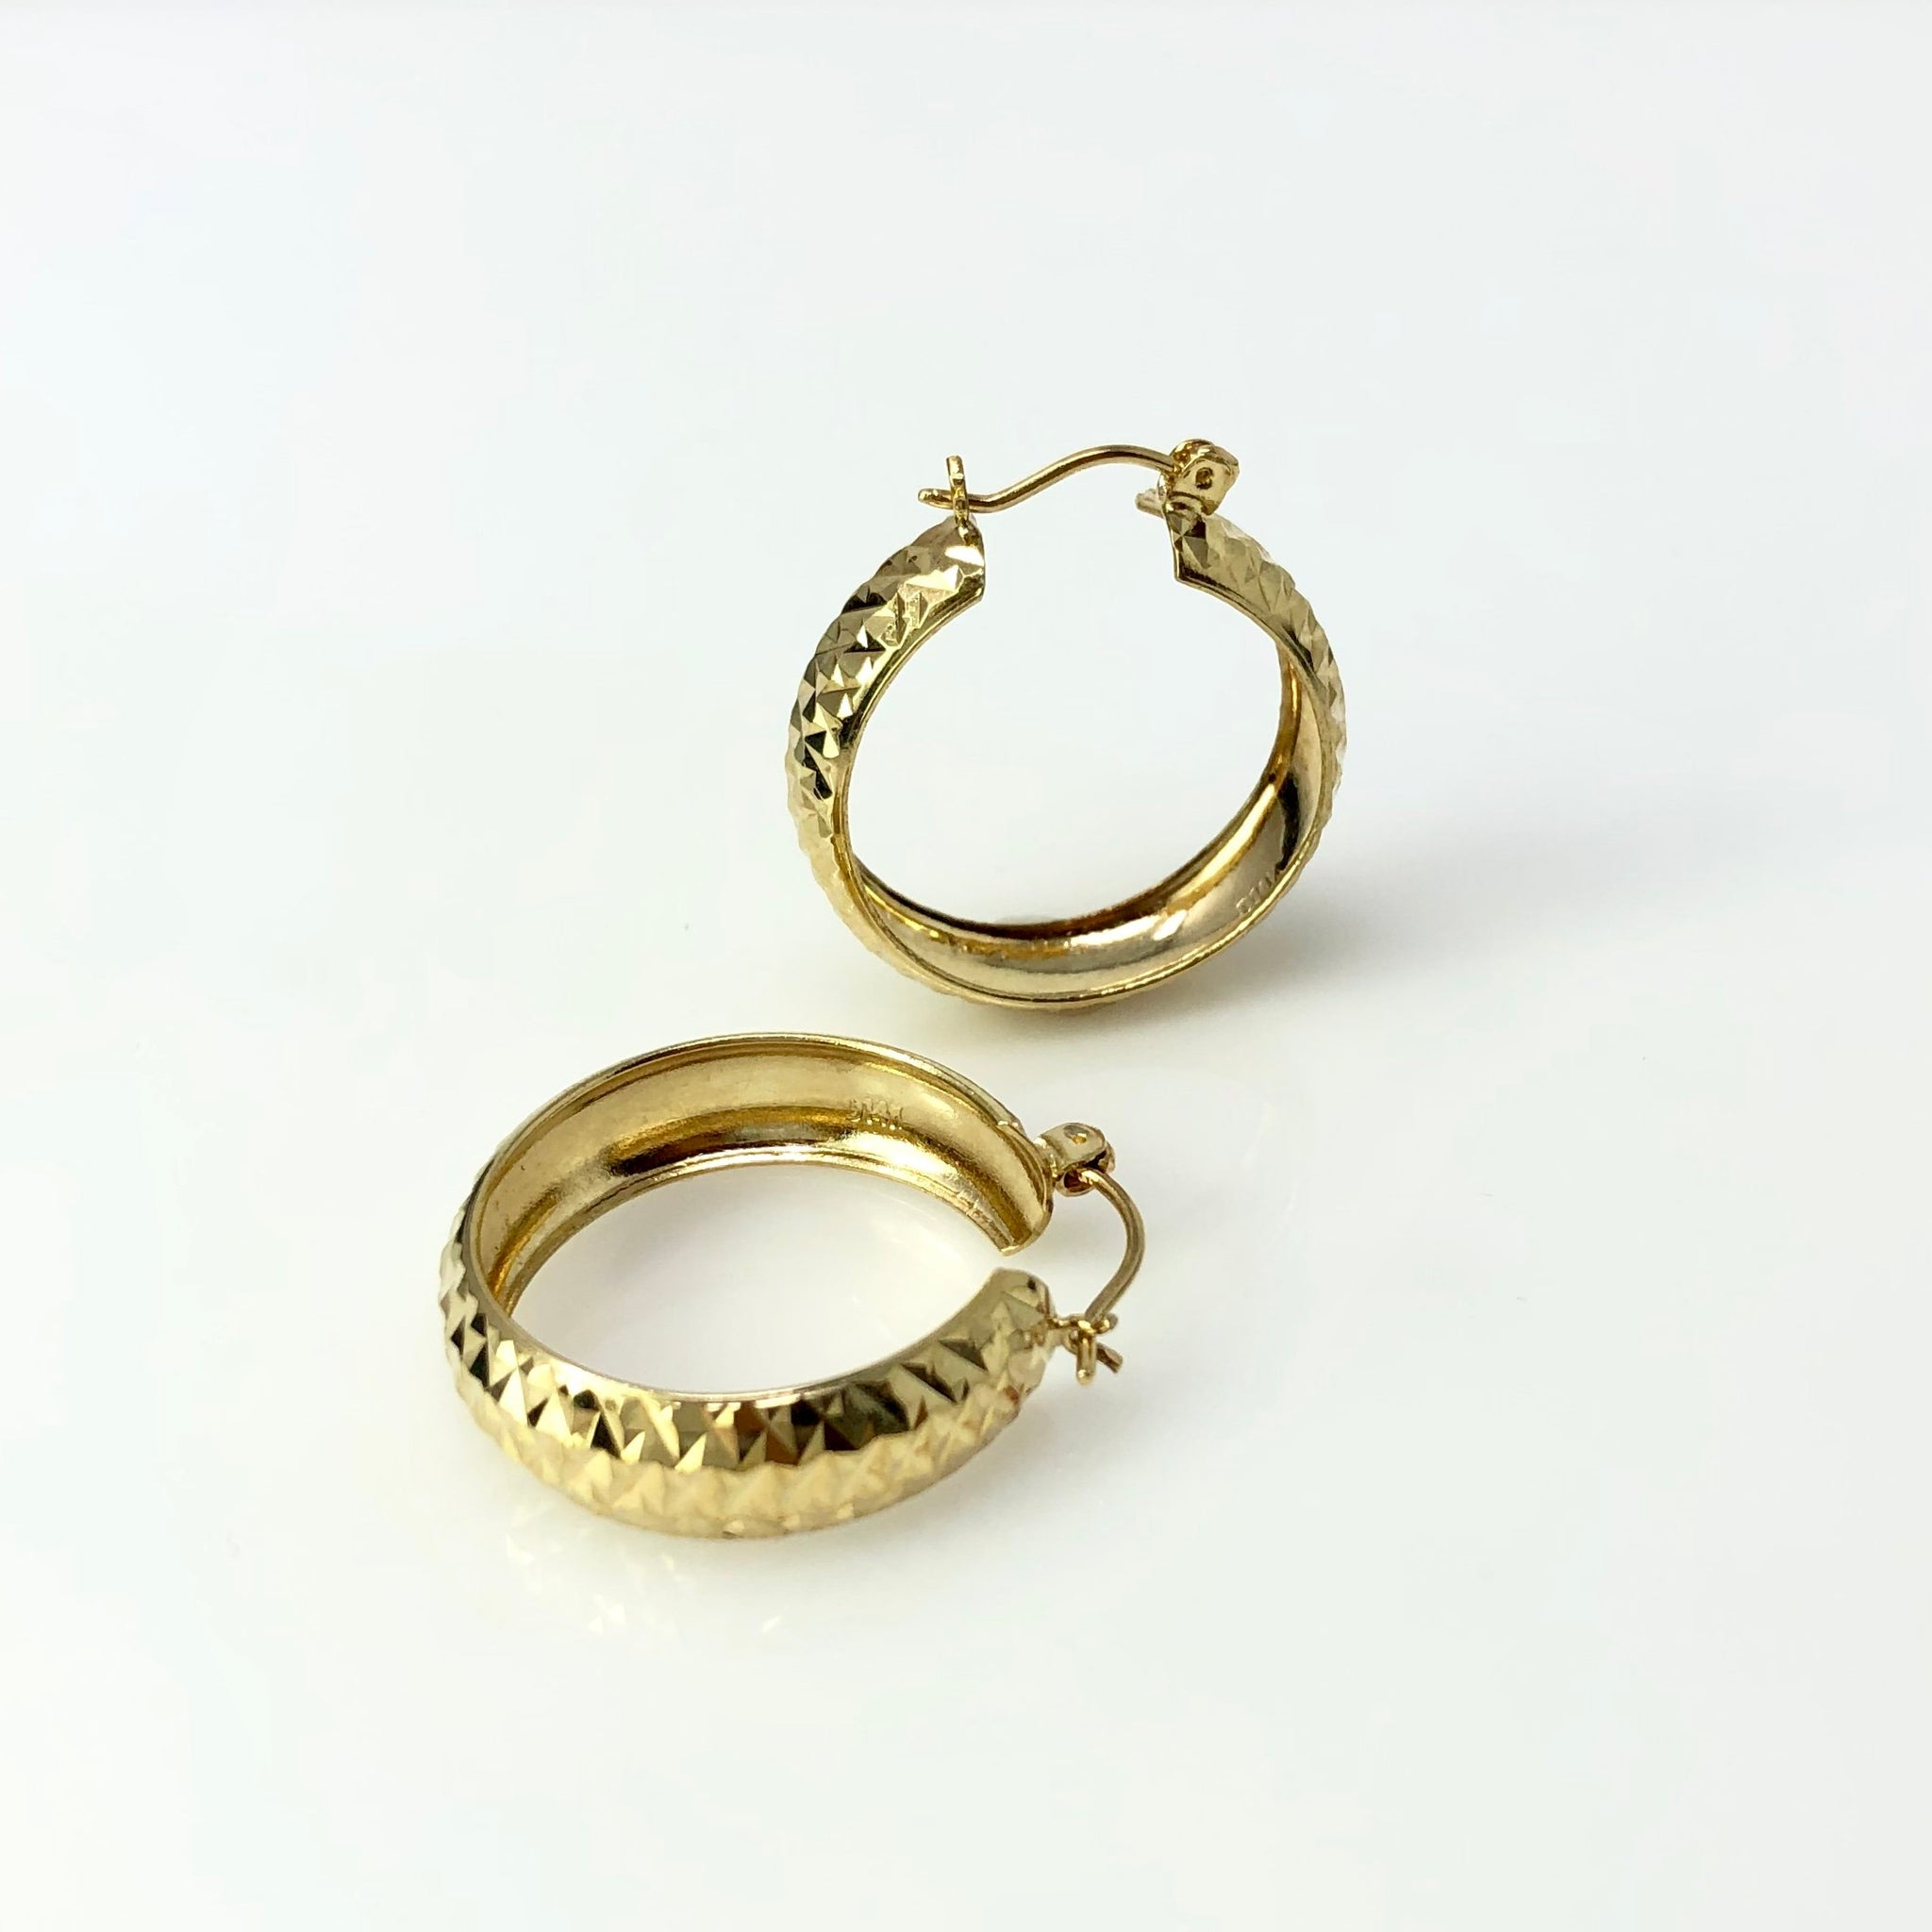 Boho Hoops - 14k Yellow Gold Diamond Cut Hoop Earrings - 4 grams